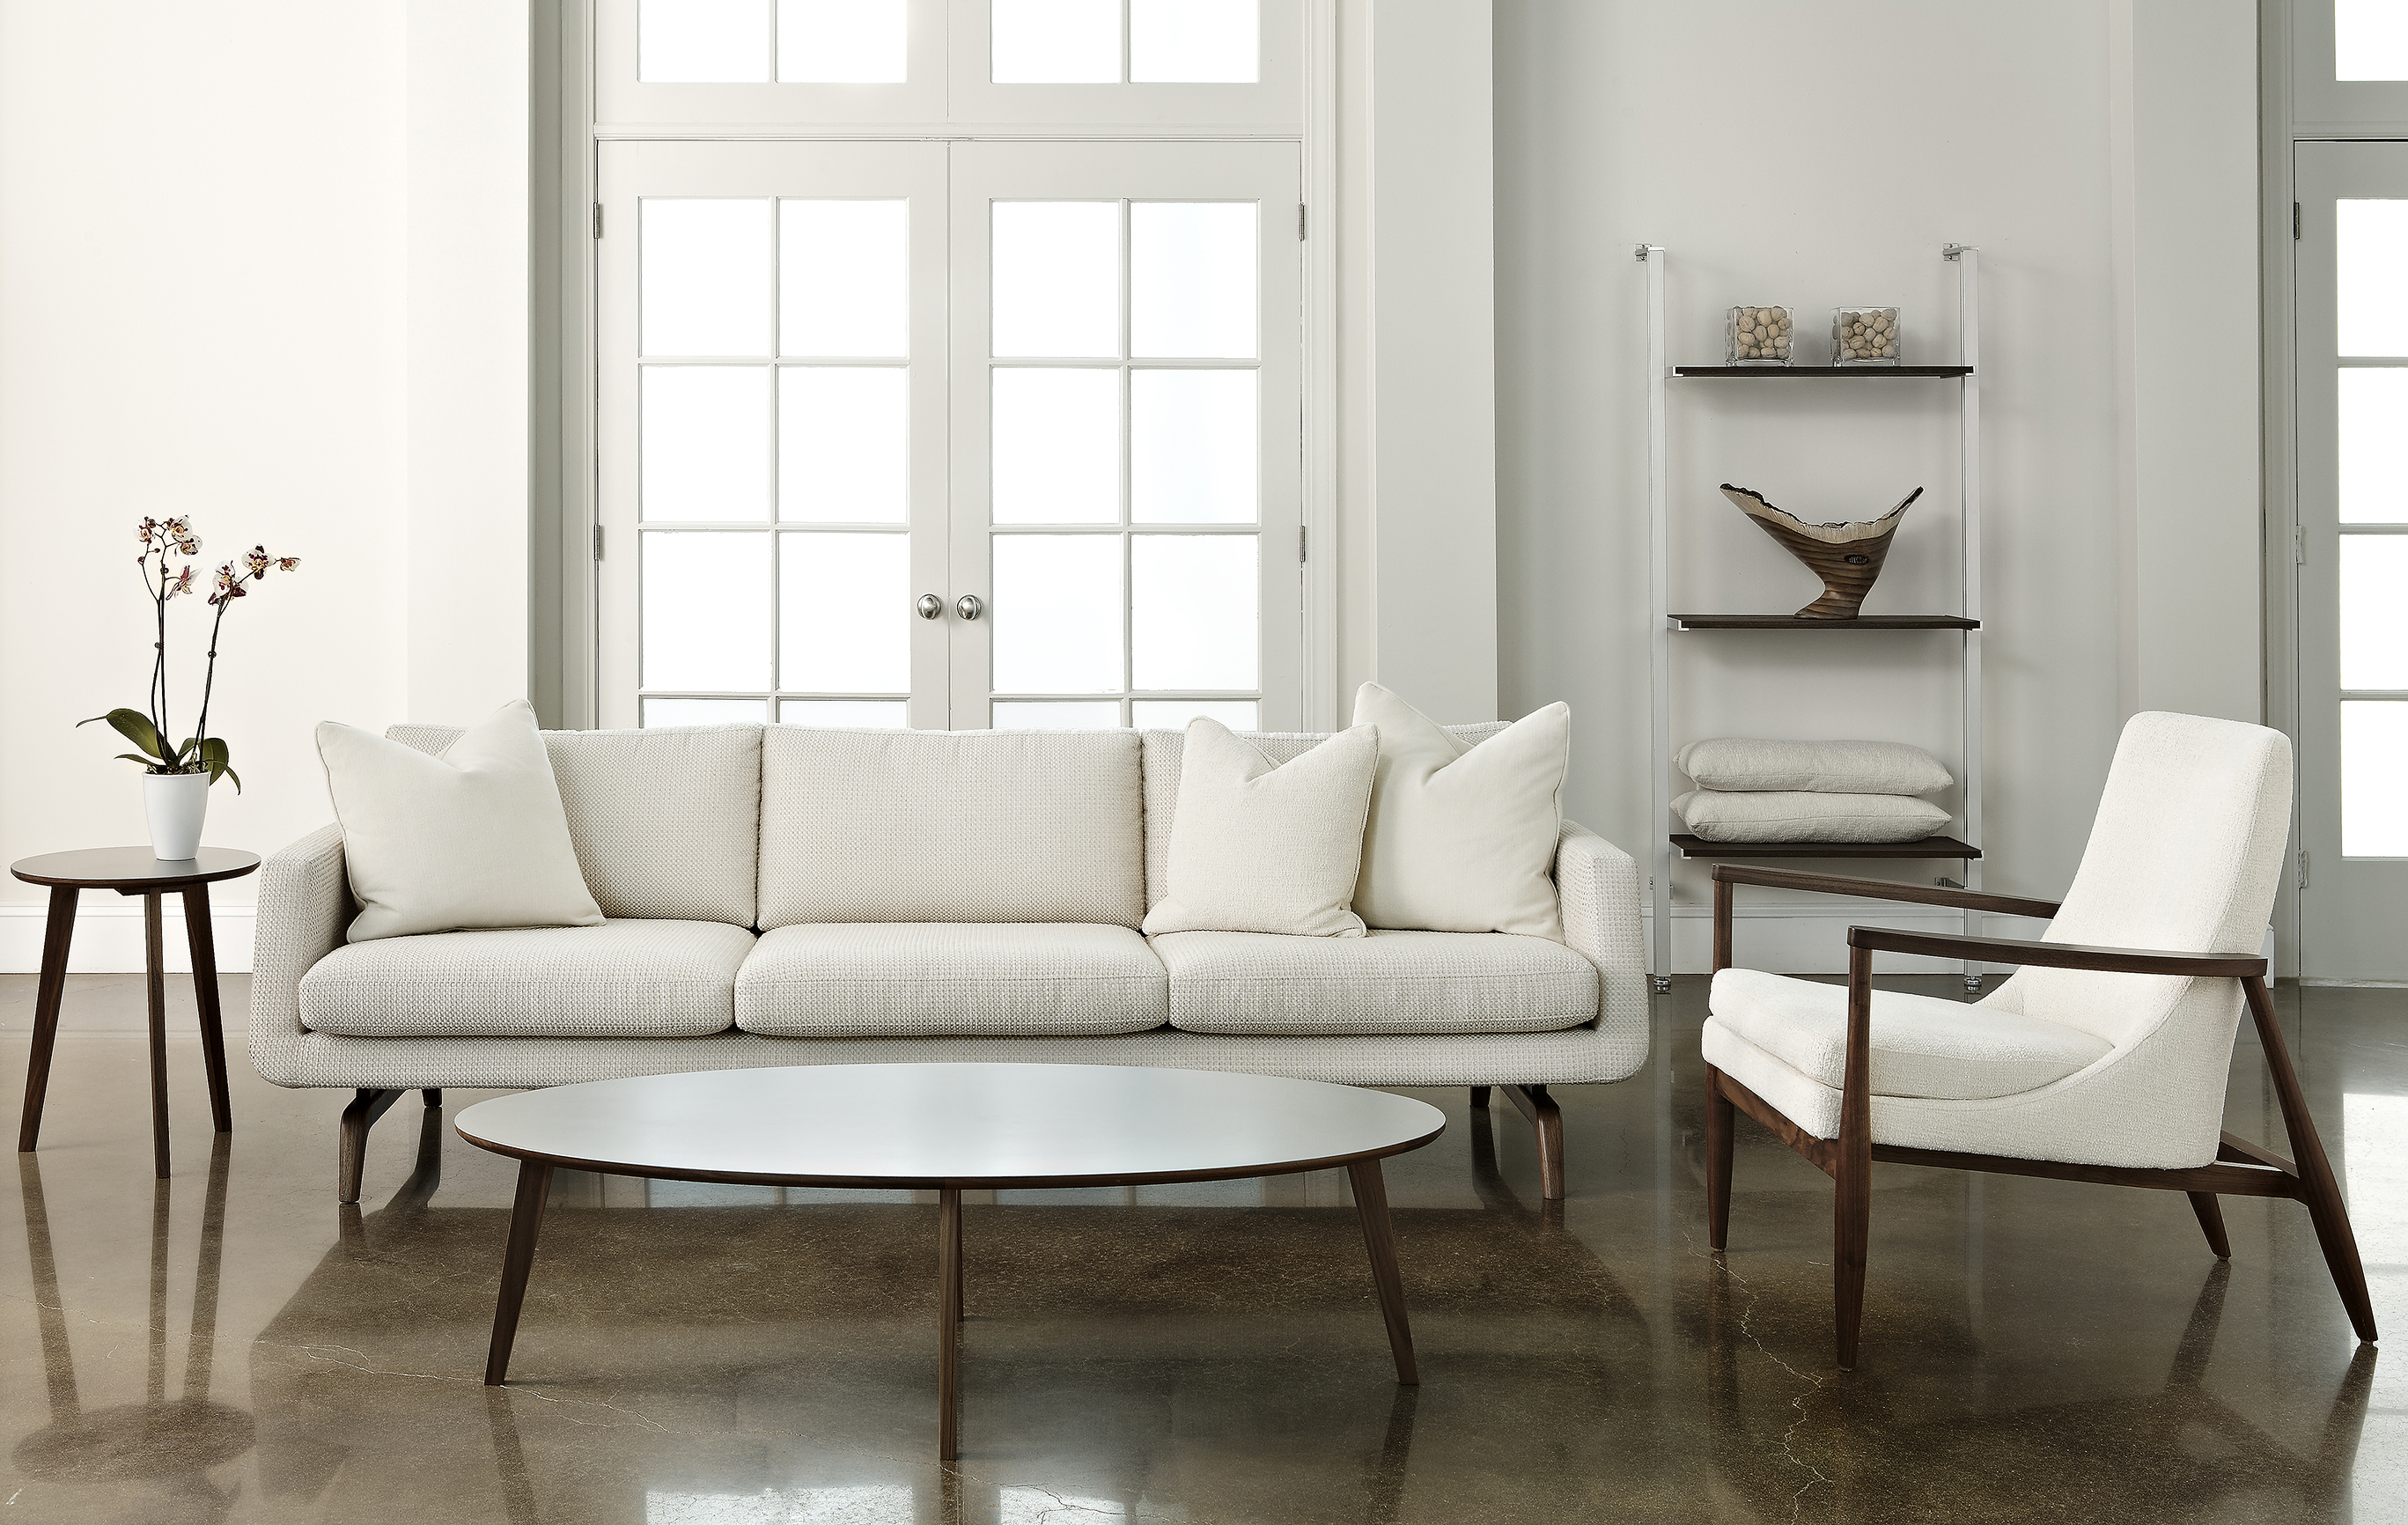 American Leather Solid Walnut collection Nash sofa with Aaron chair